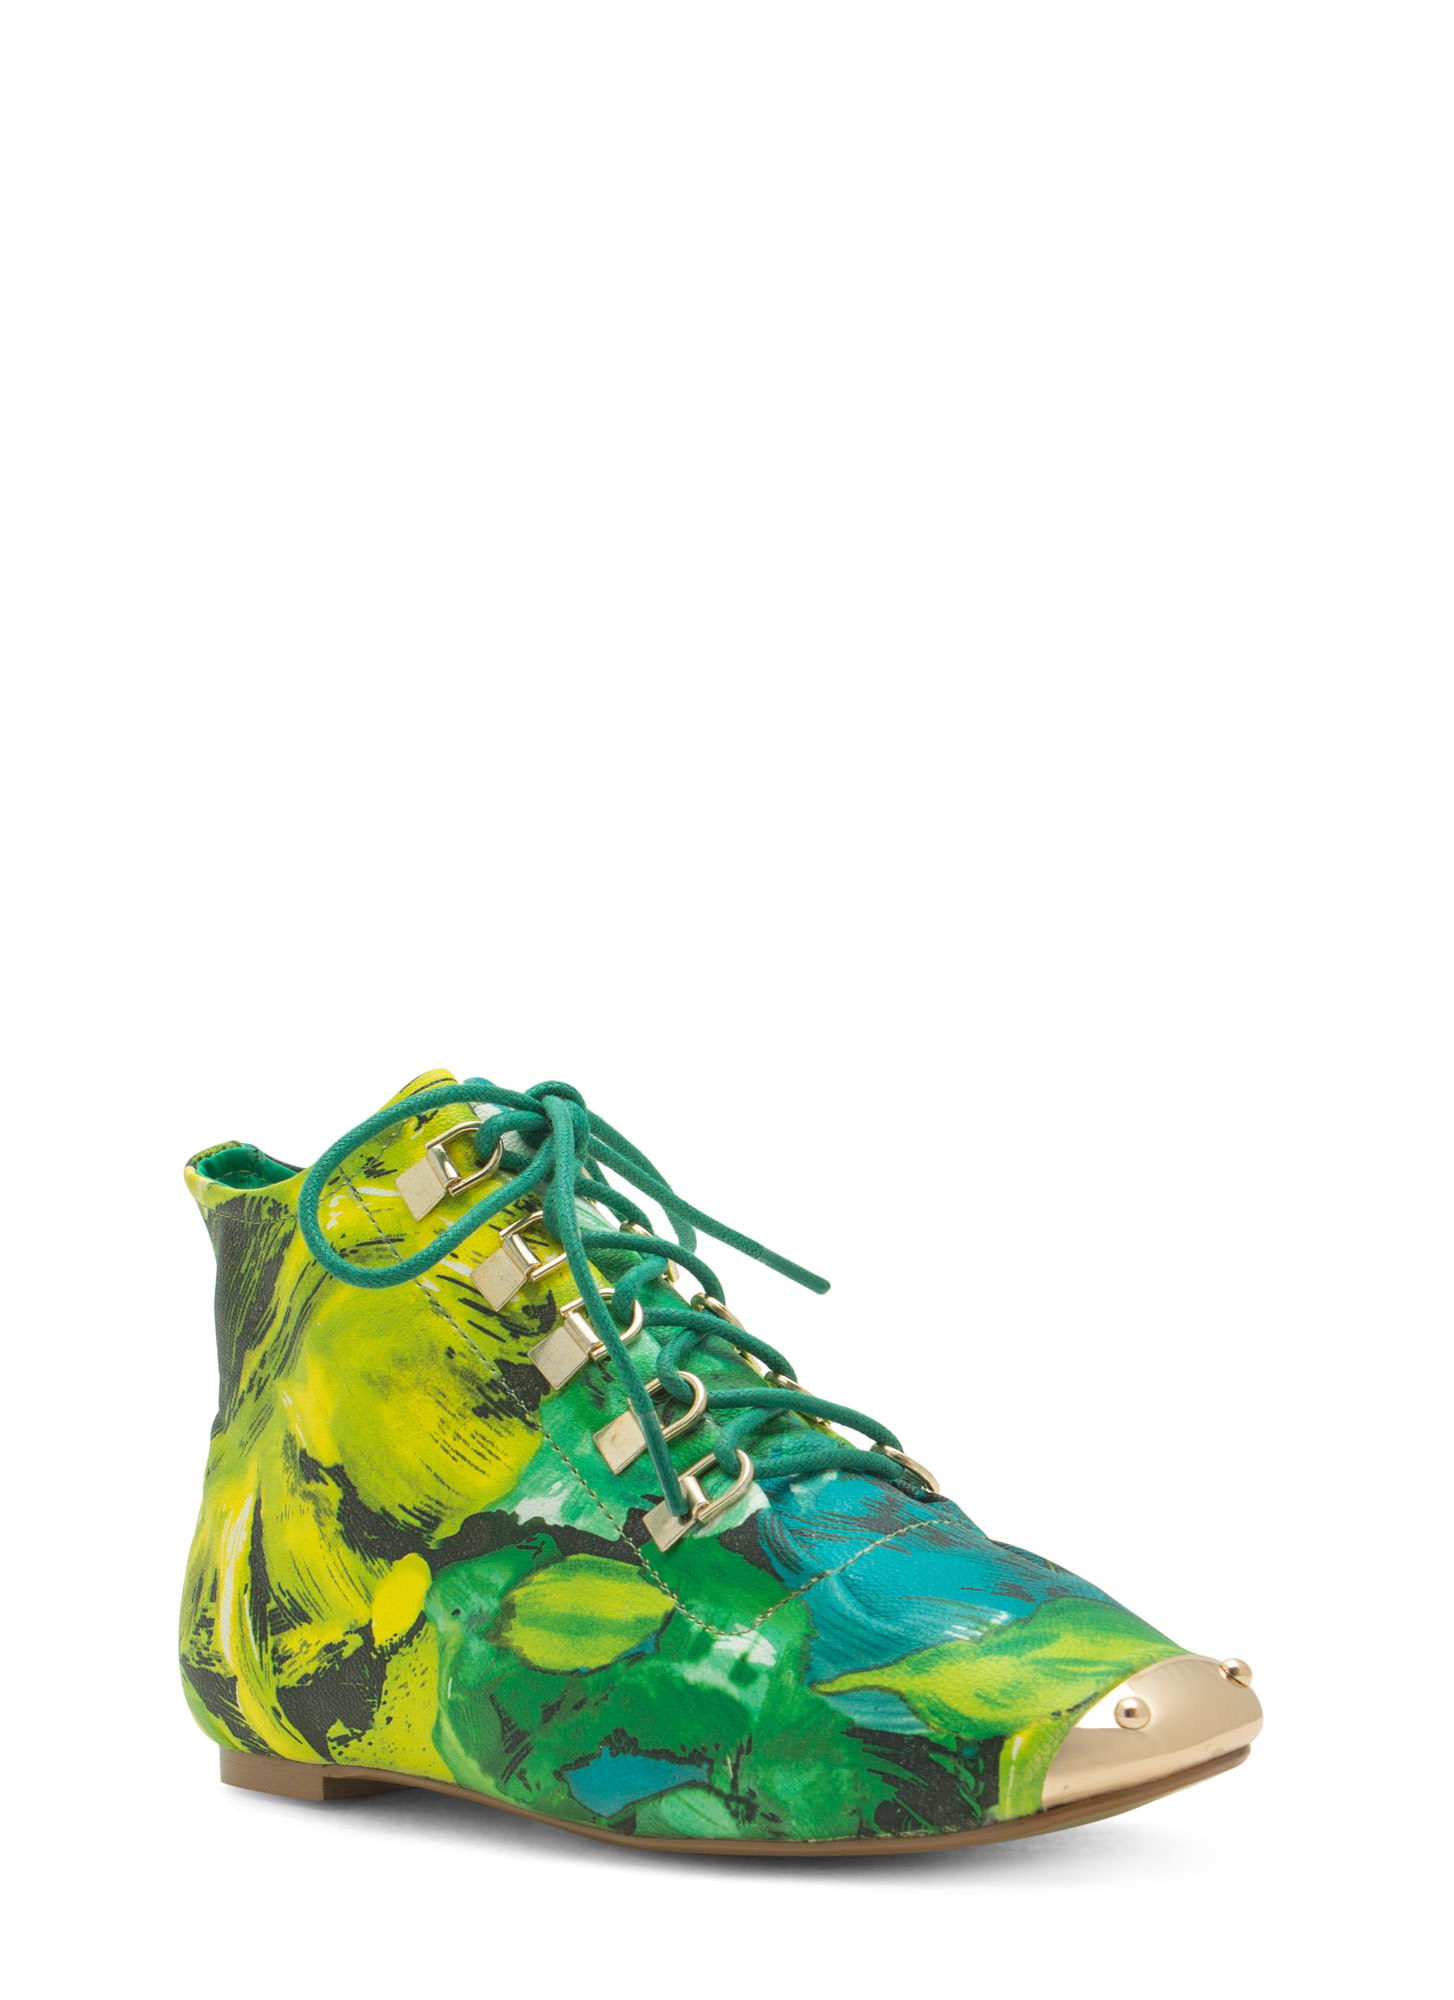 State Of The Art Moccasin Booties GREENMULTI